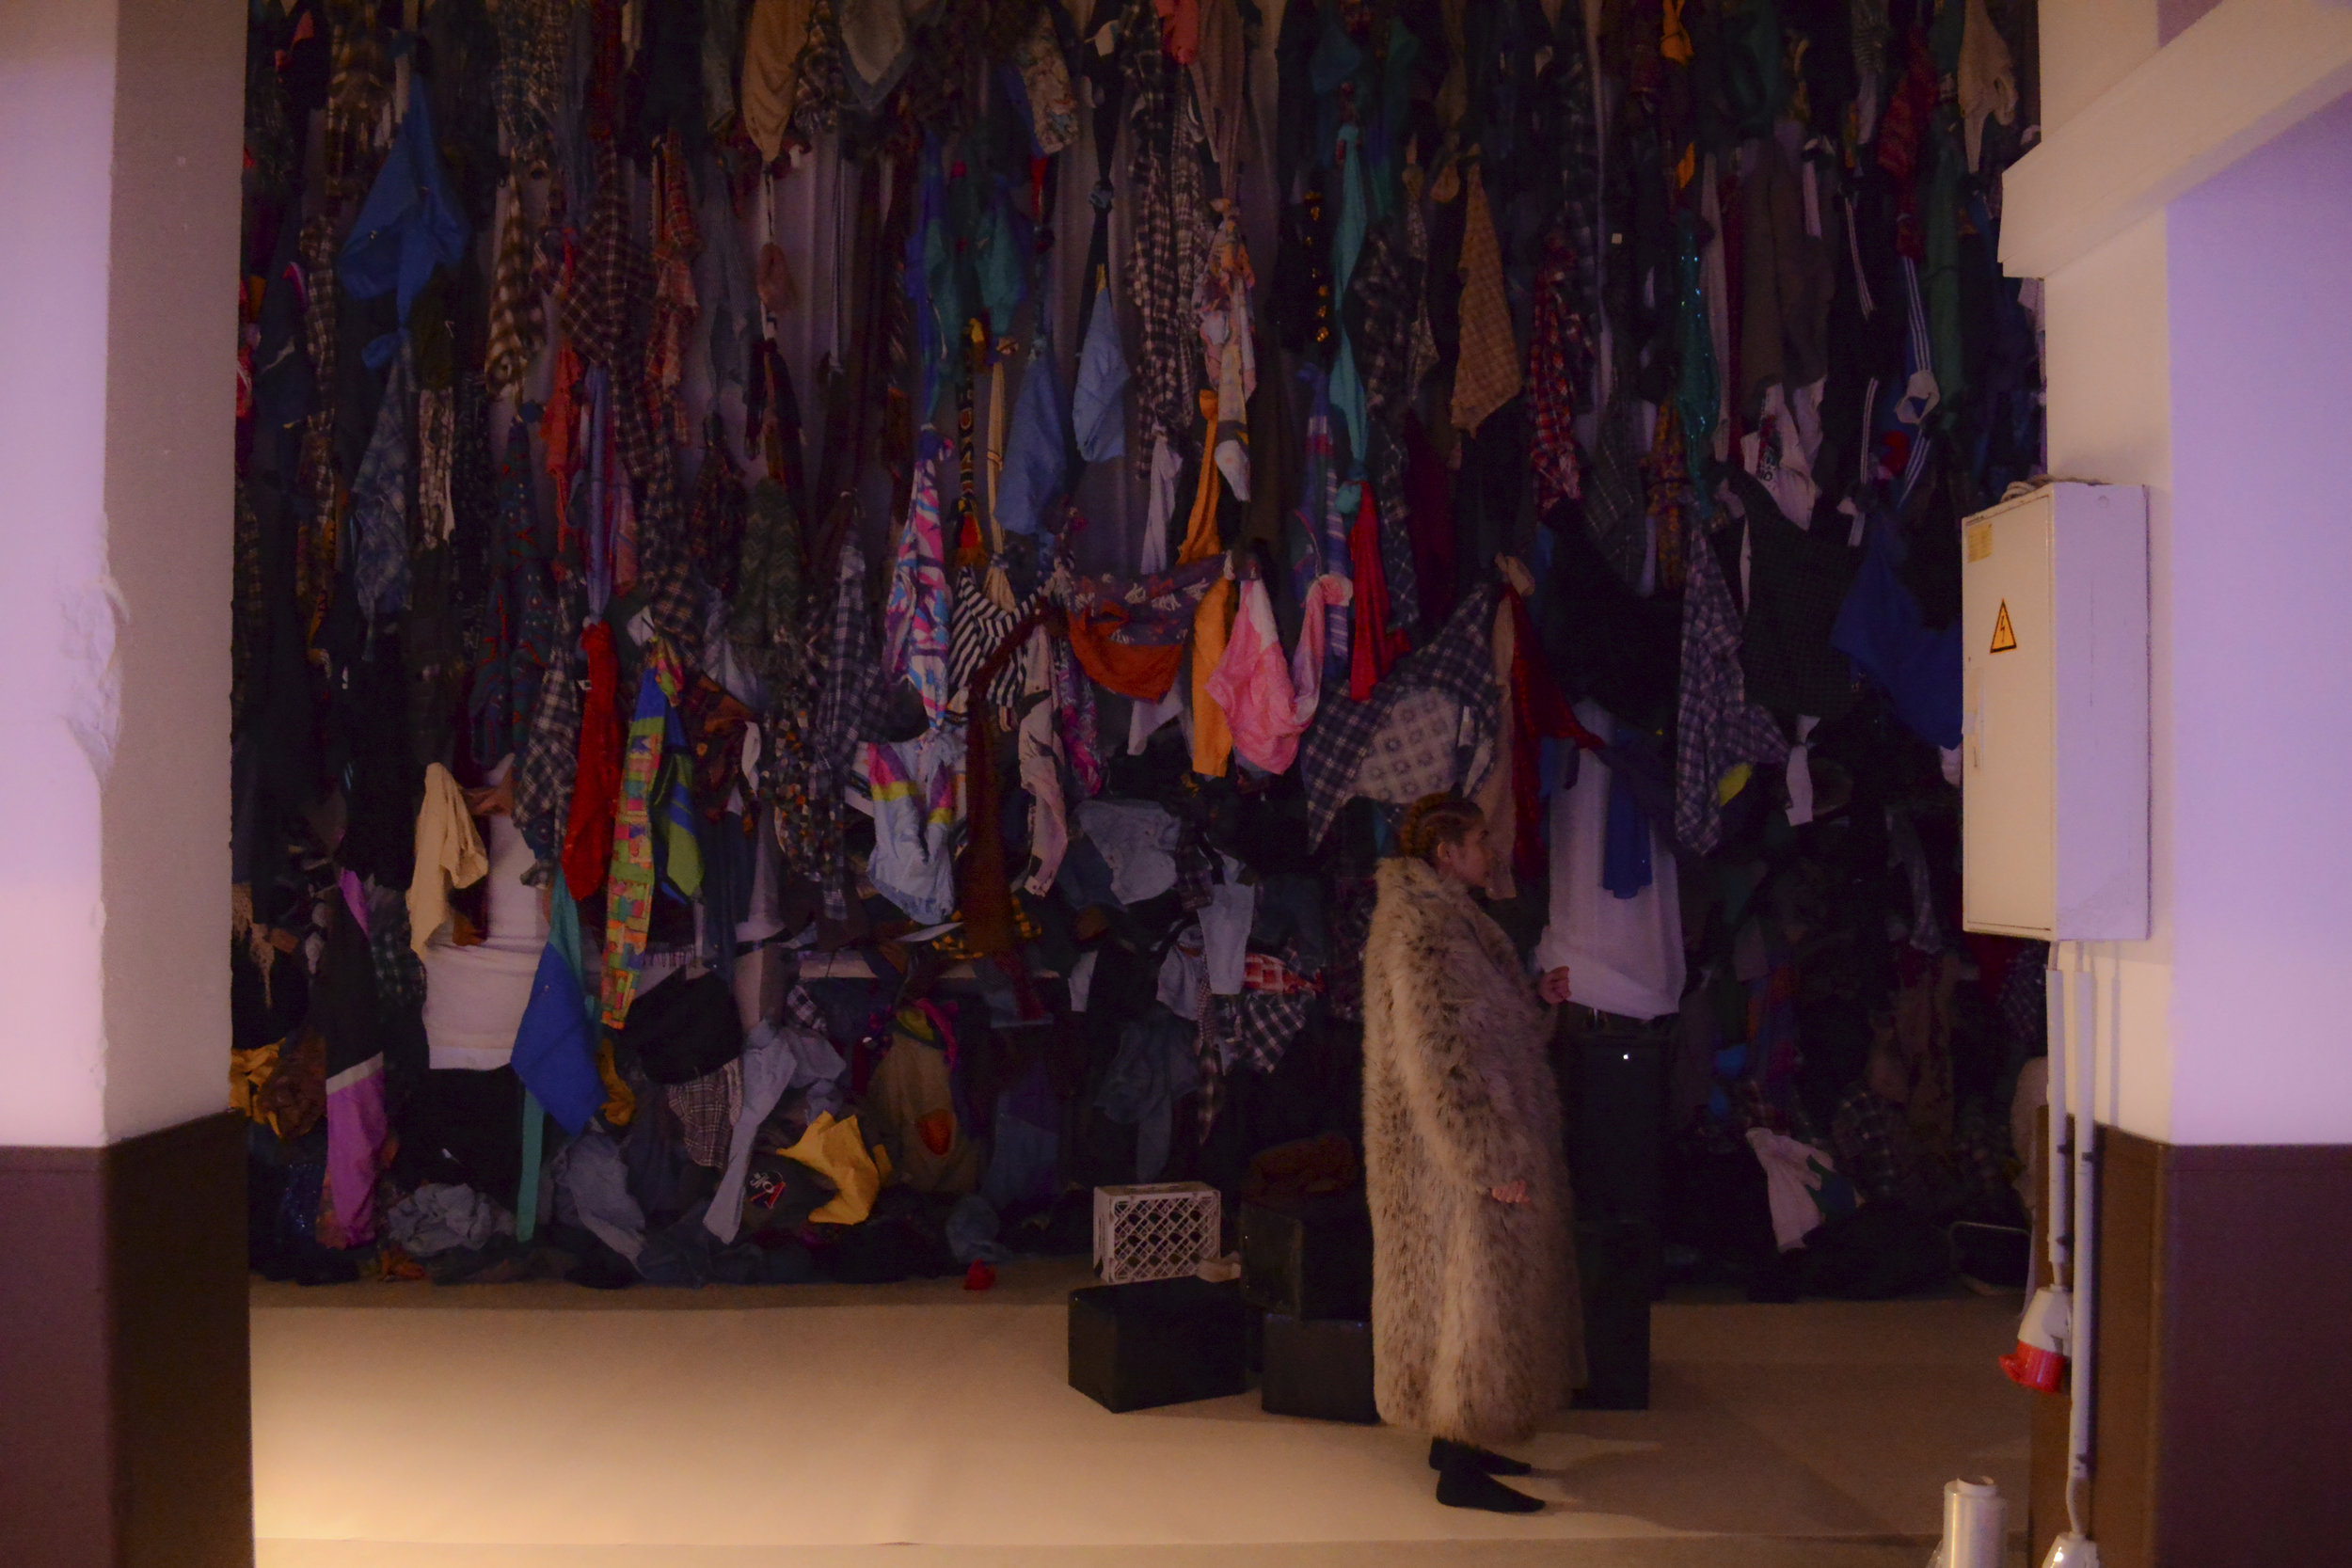 after the show: Doyel in front of the landfills of clothes. (c)Isabel Hayn